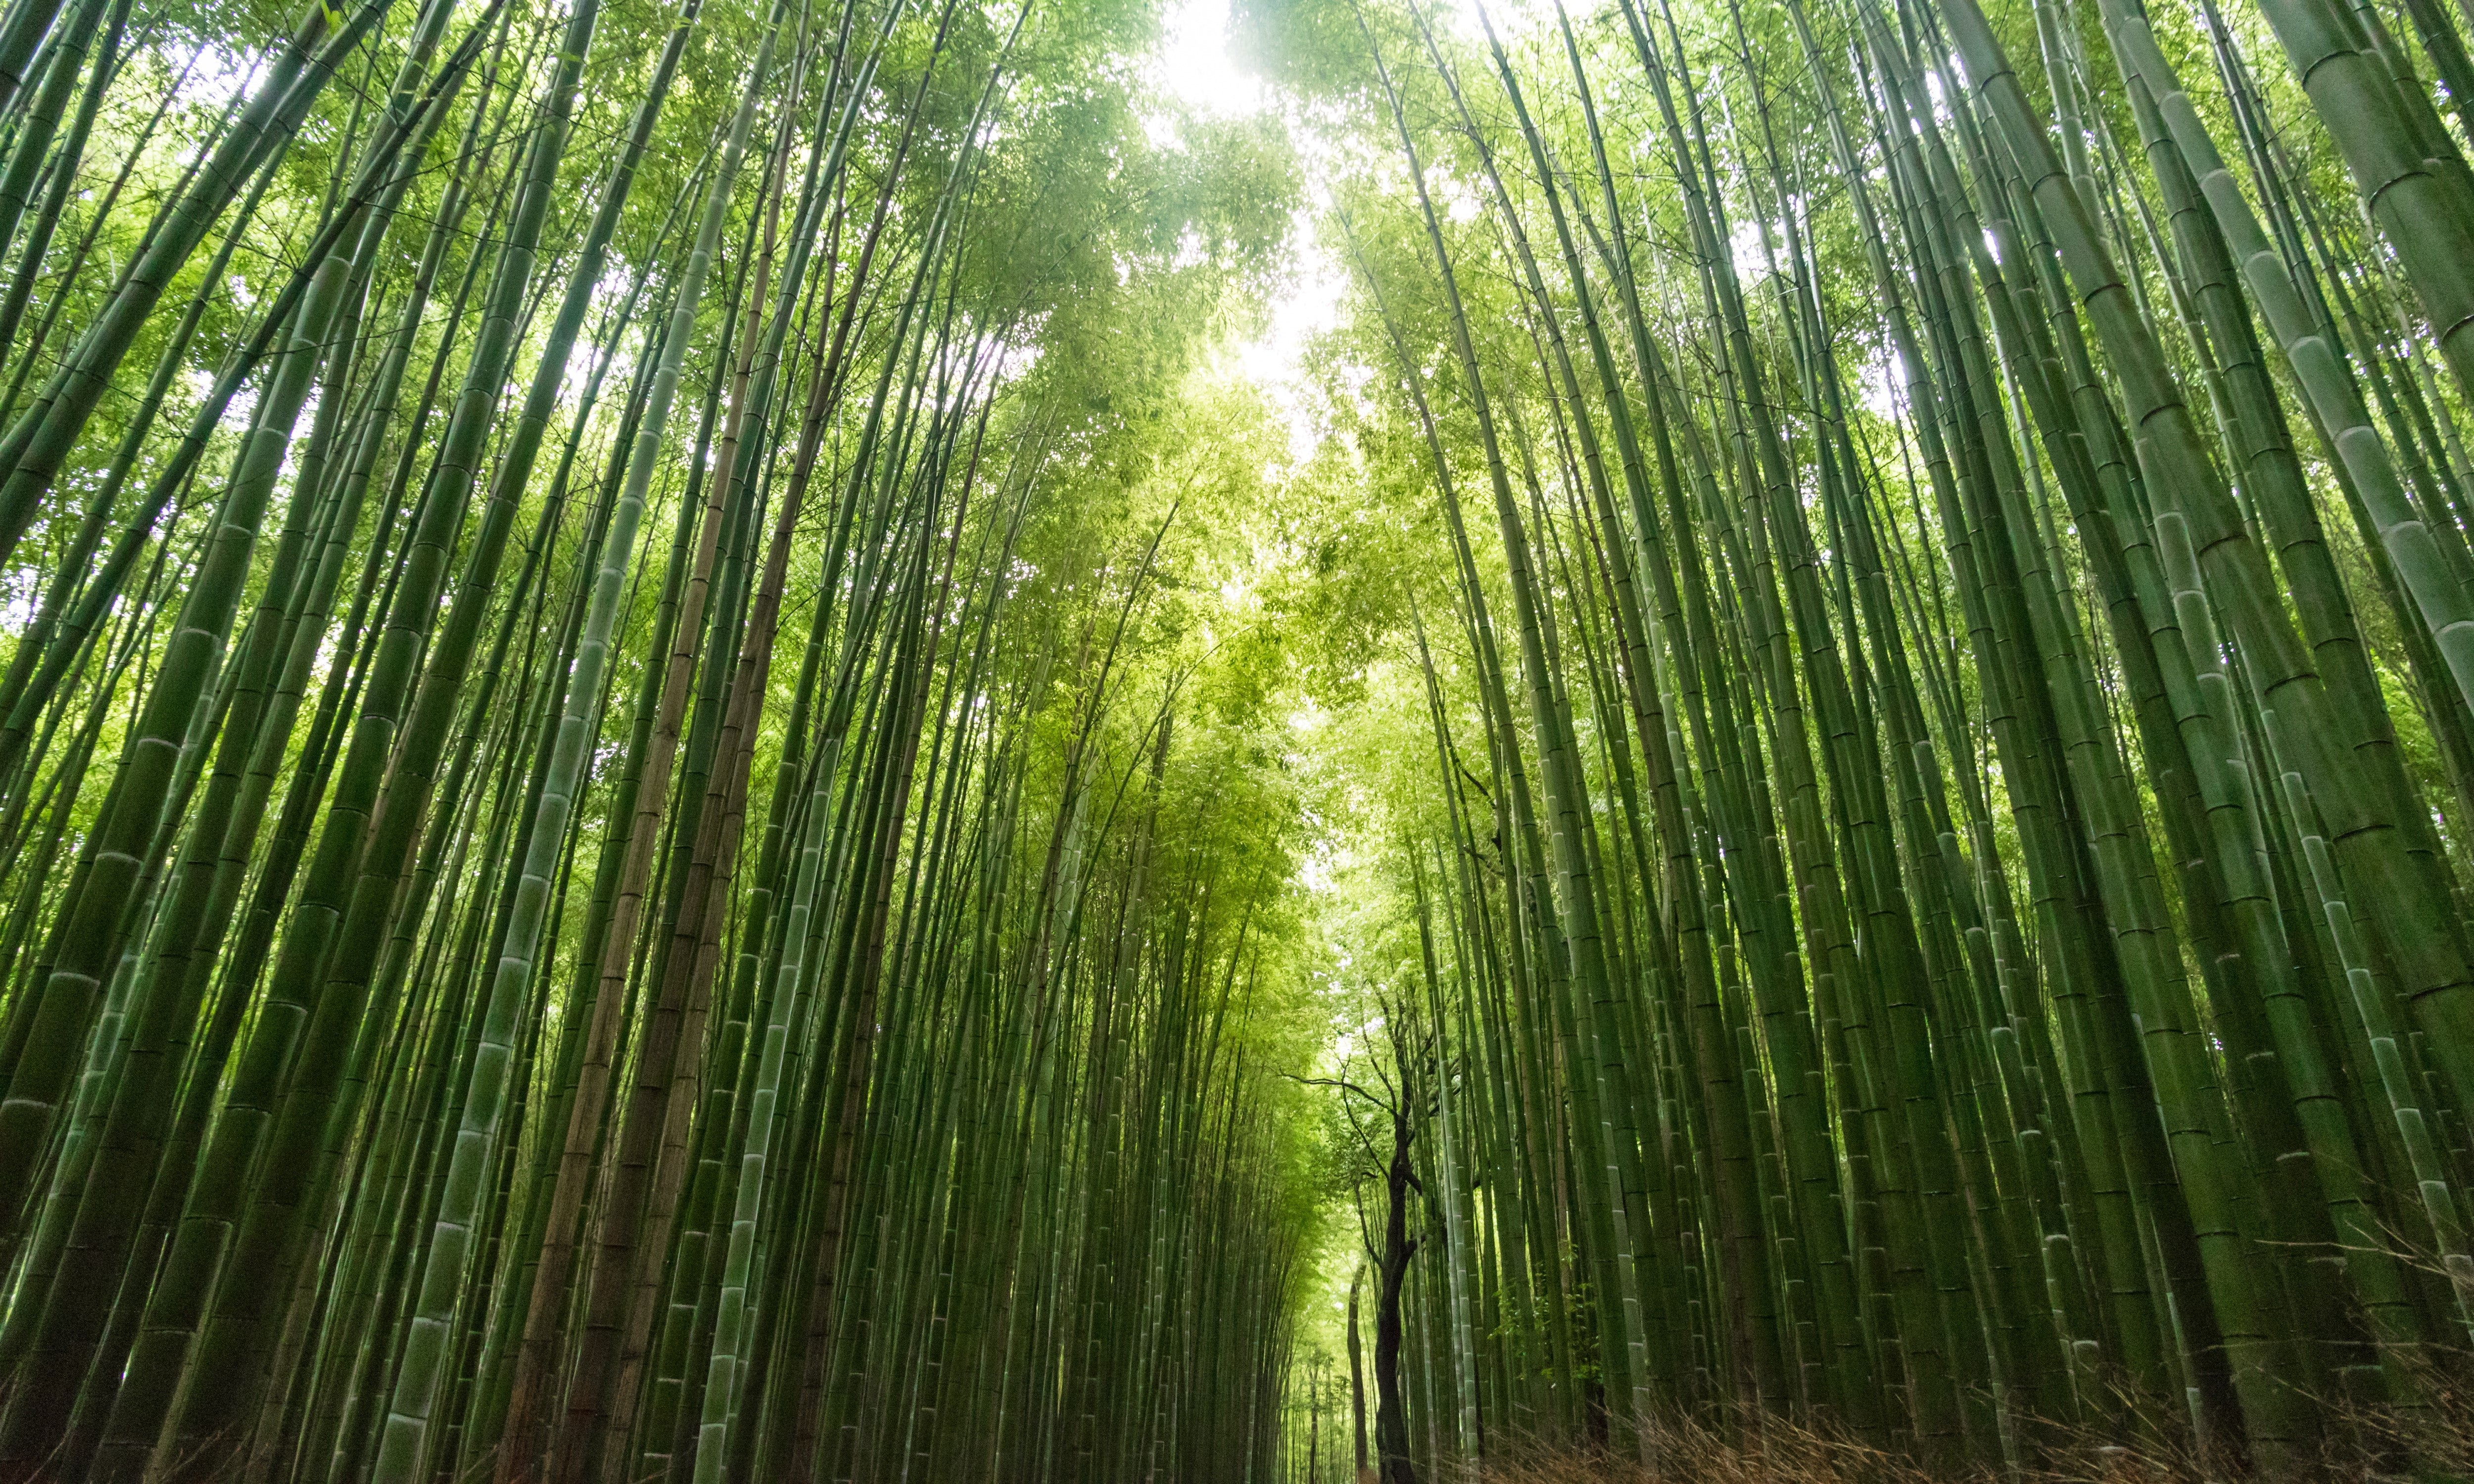 Green bamboo trees grow beautifully side by side in a forest. The sun shimmers through to the dark floor.